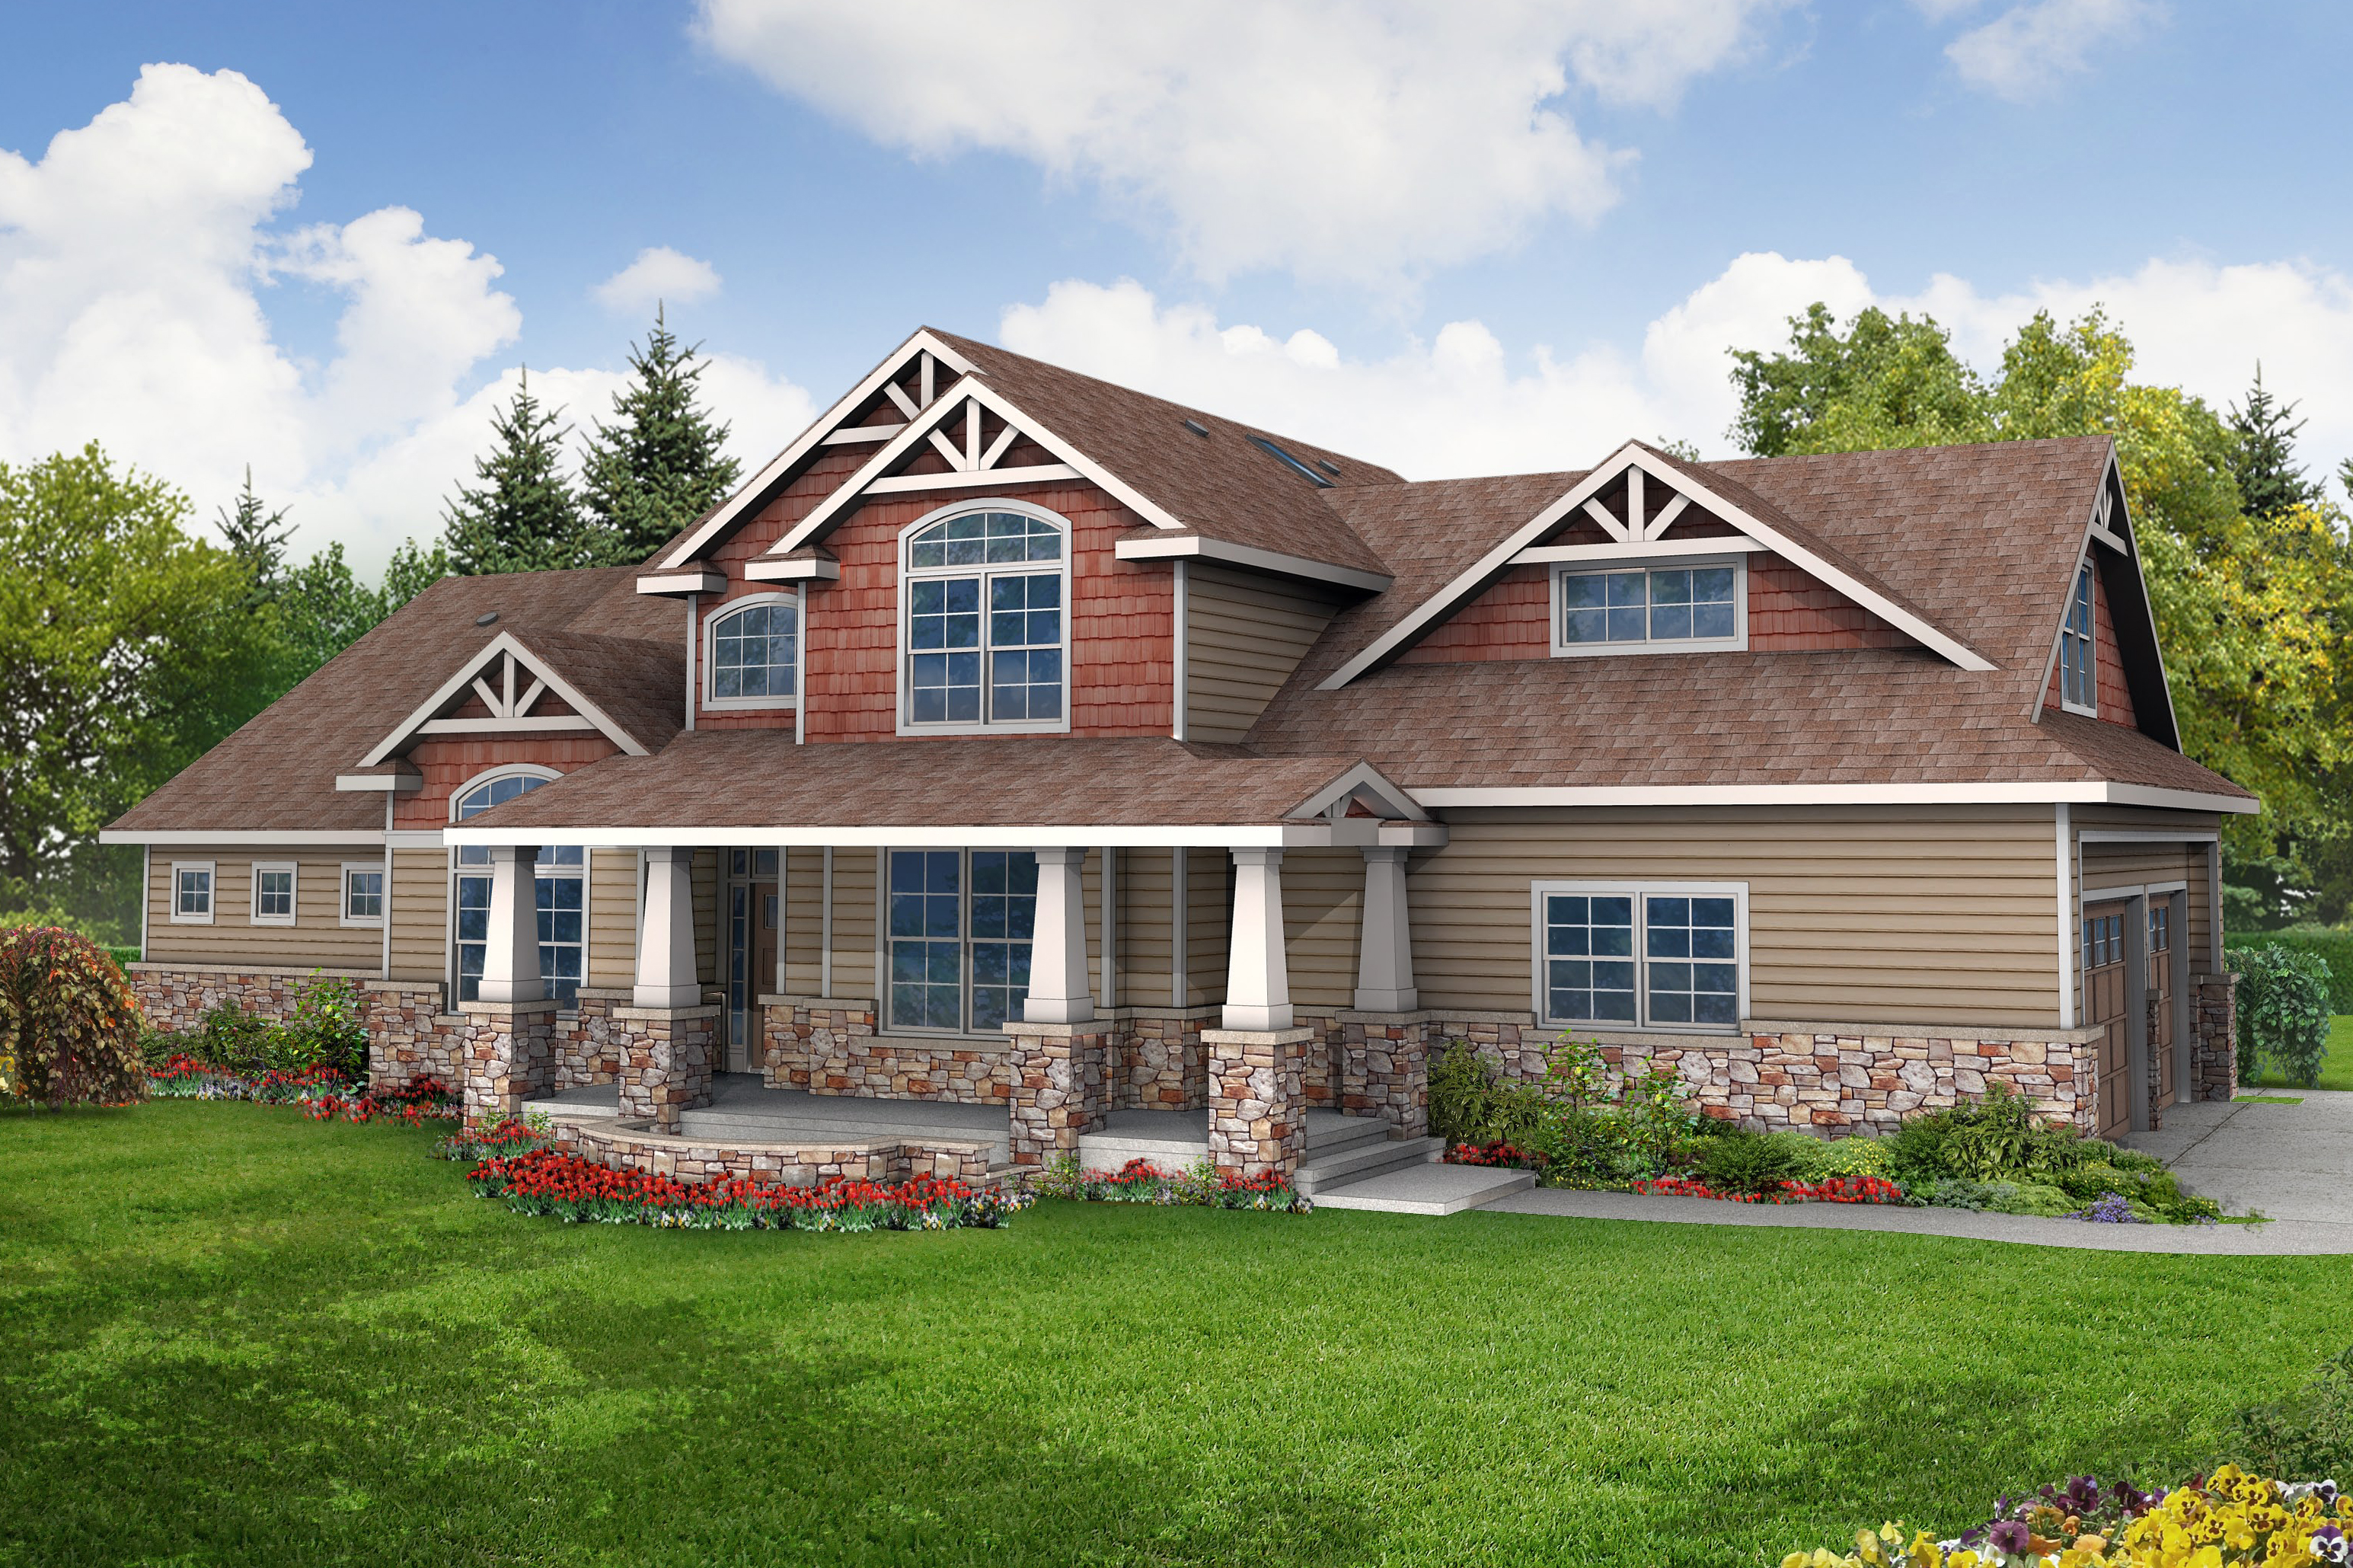 Craftsman house plans craftsman home plans craftsman for Craftsman house floor plans